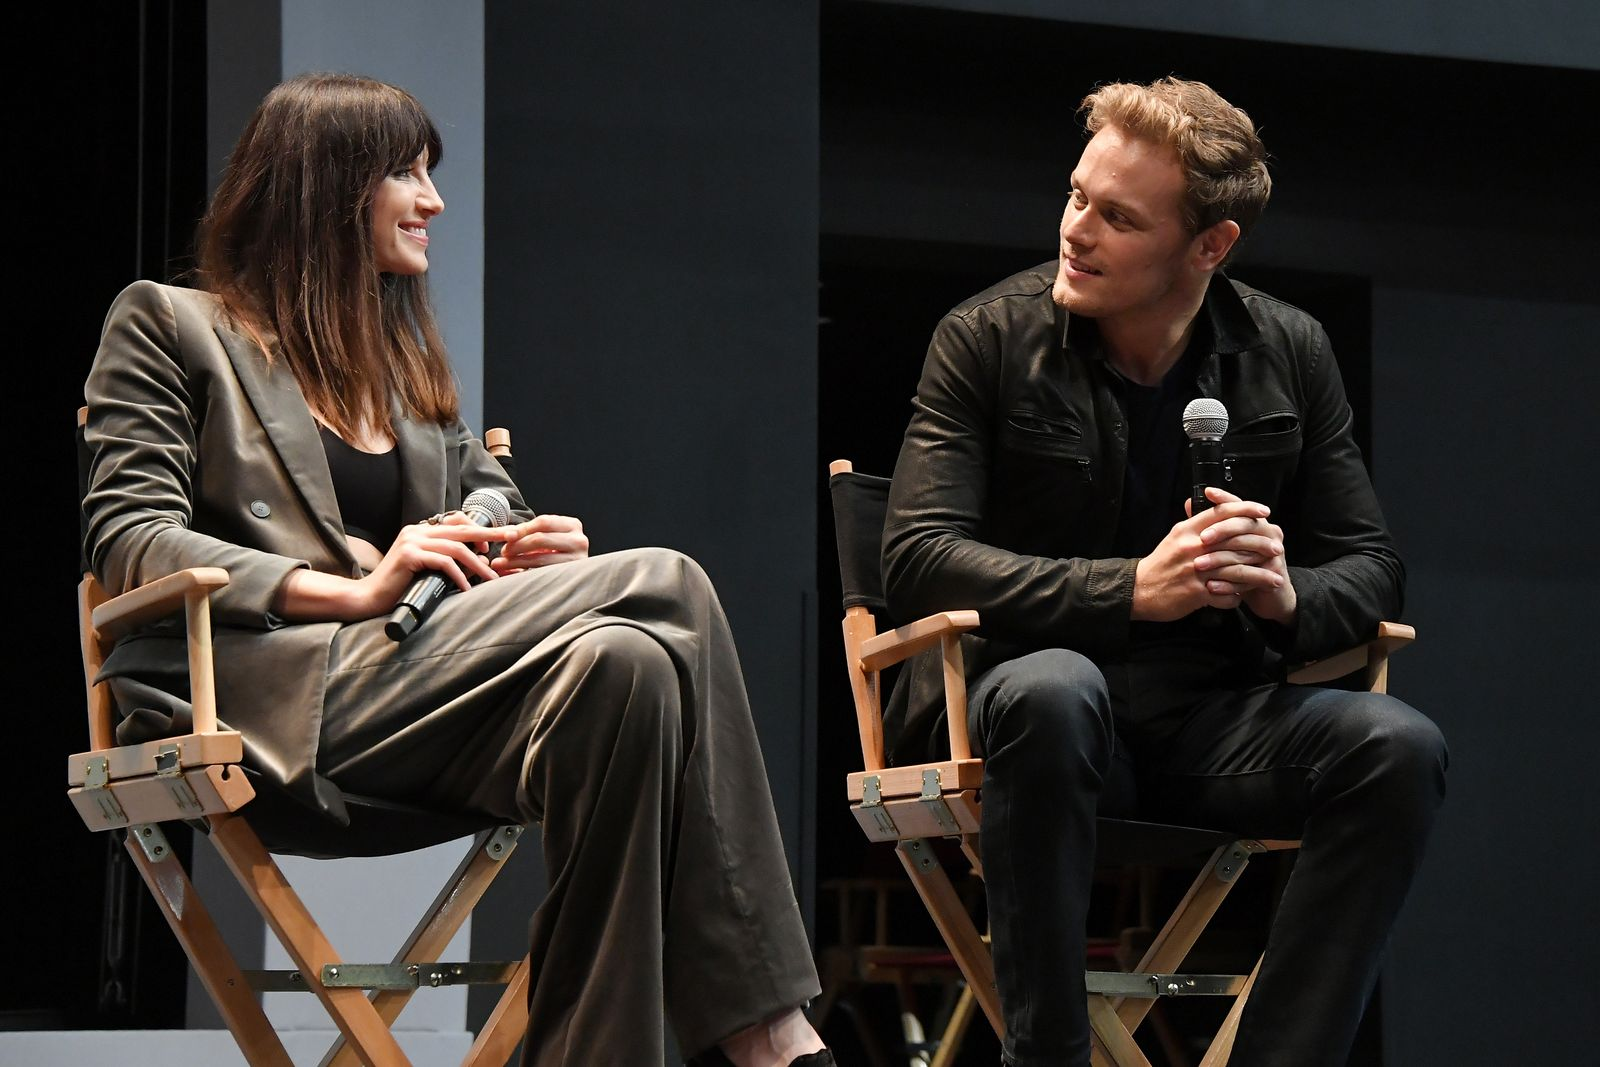 Caitriona Balfe and Sam Heughan of Outlander Starz/Photo:Getty Images